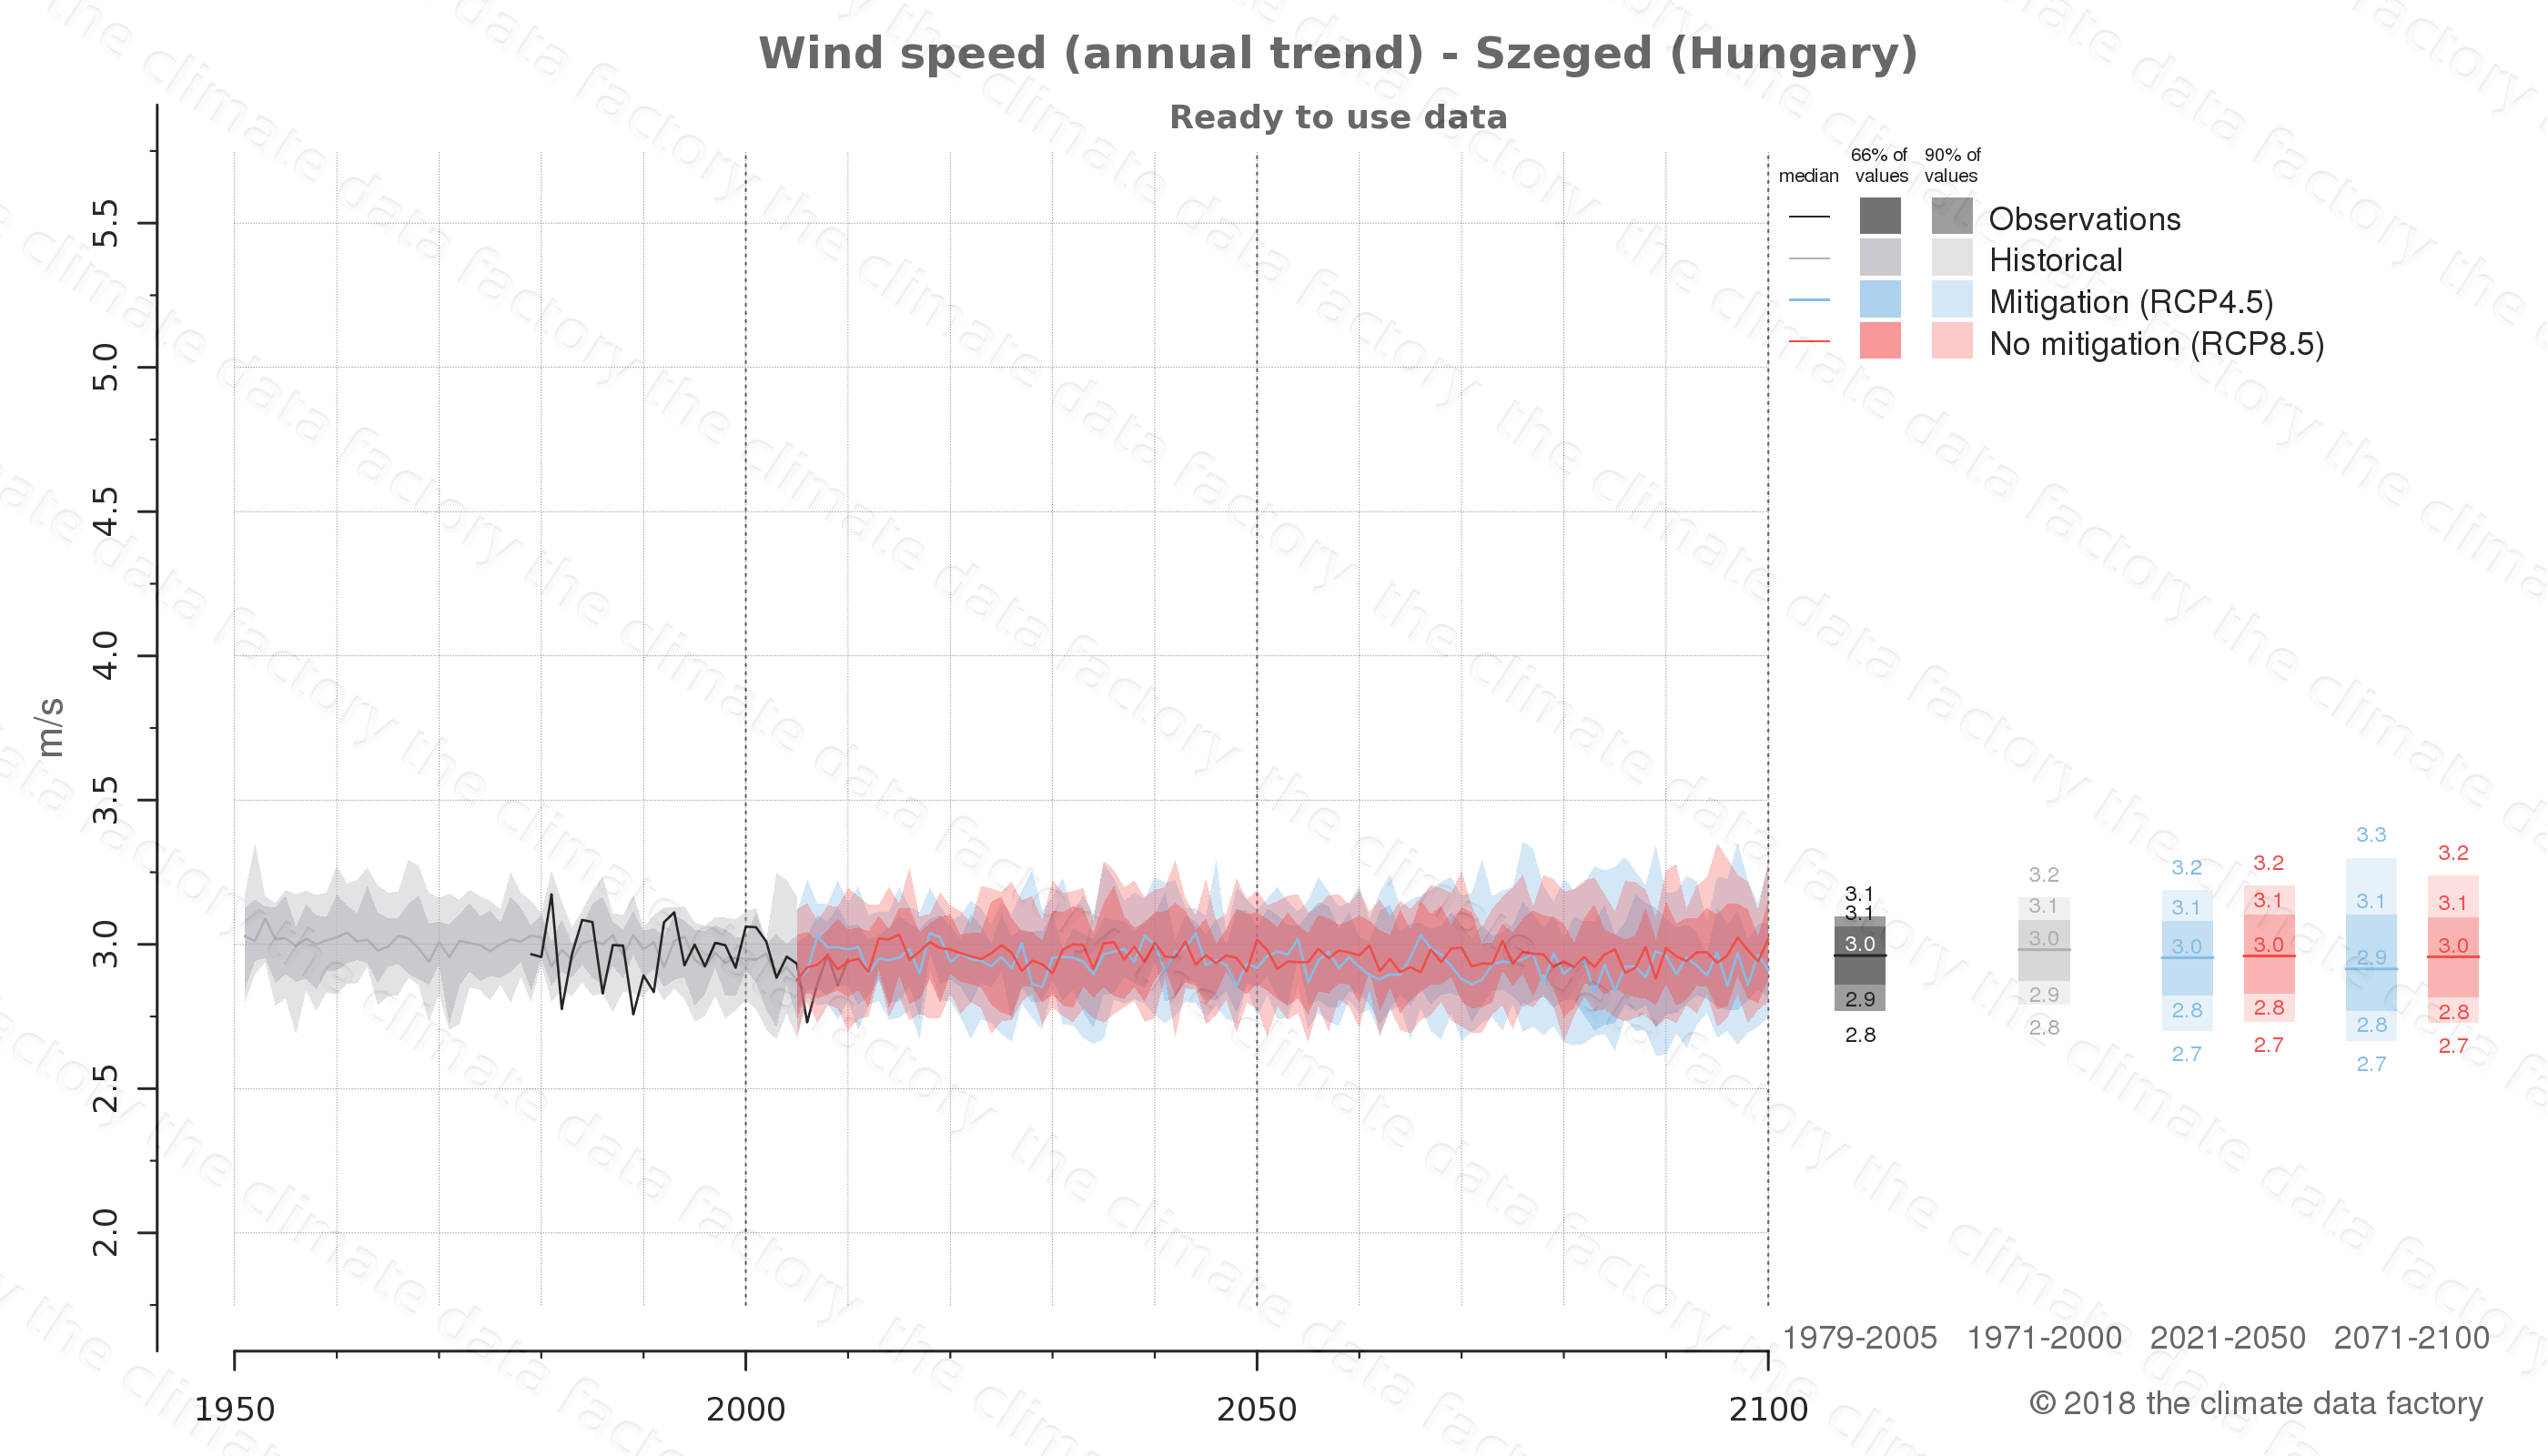 climate change data policy adaptation climate graph city data wind-speed szeged hungary